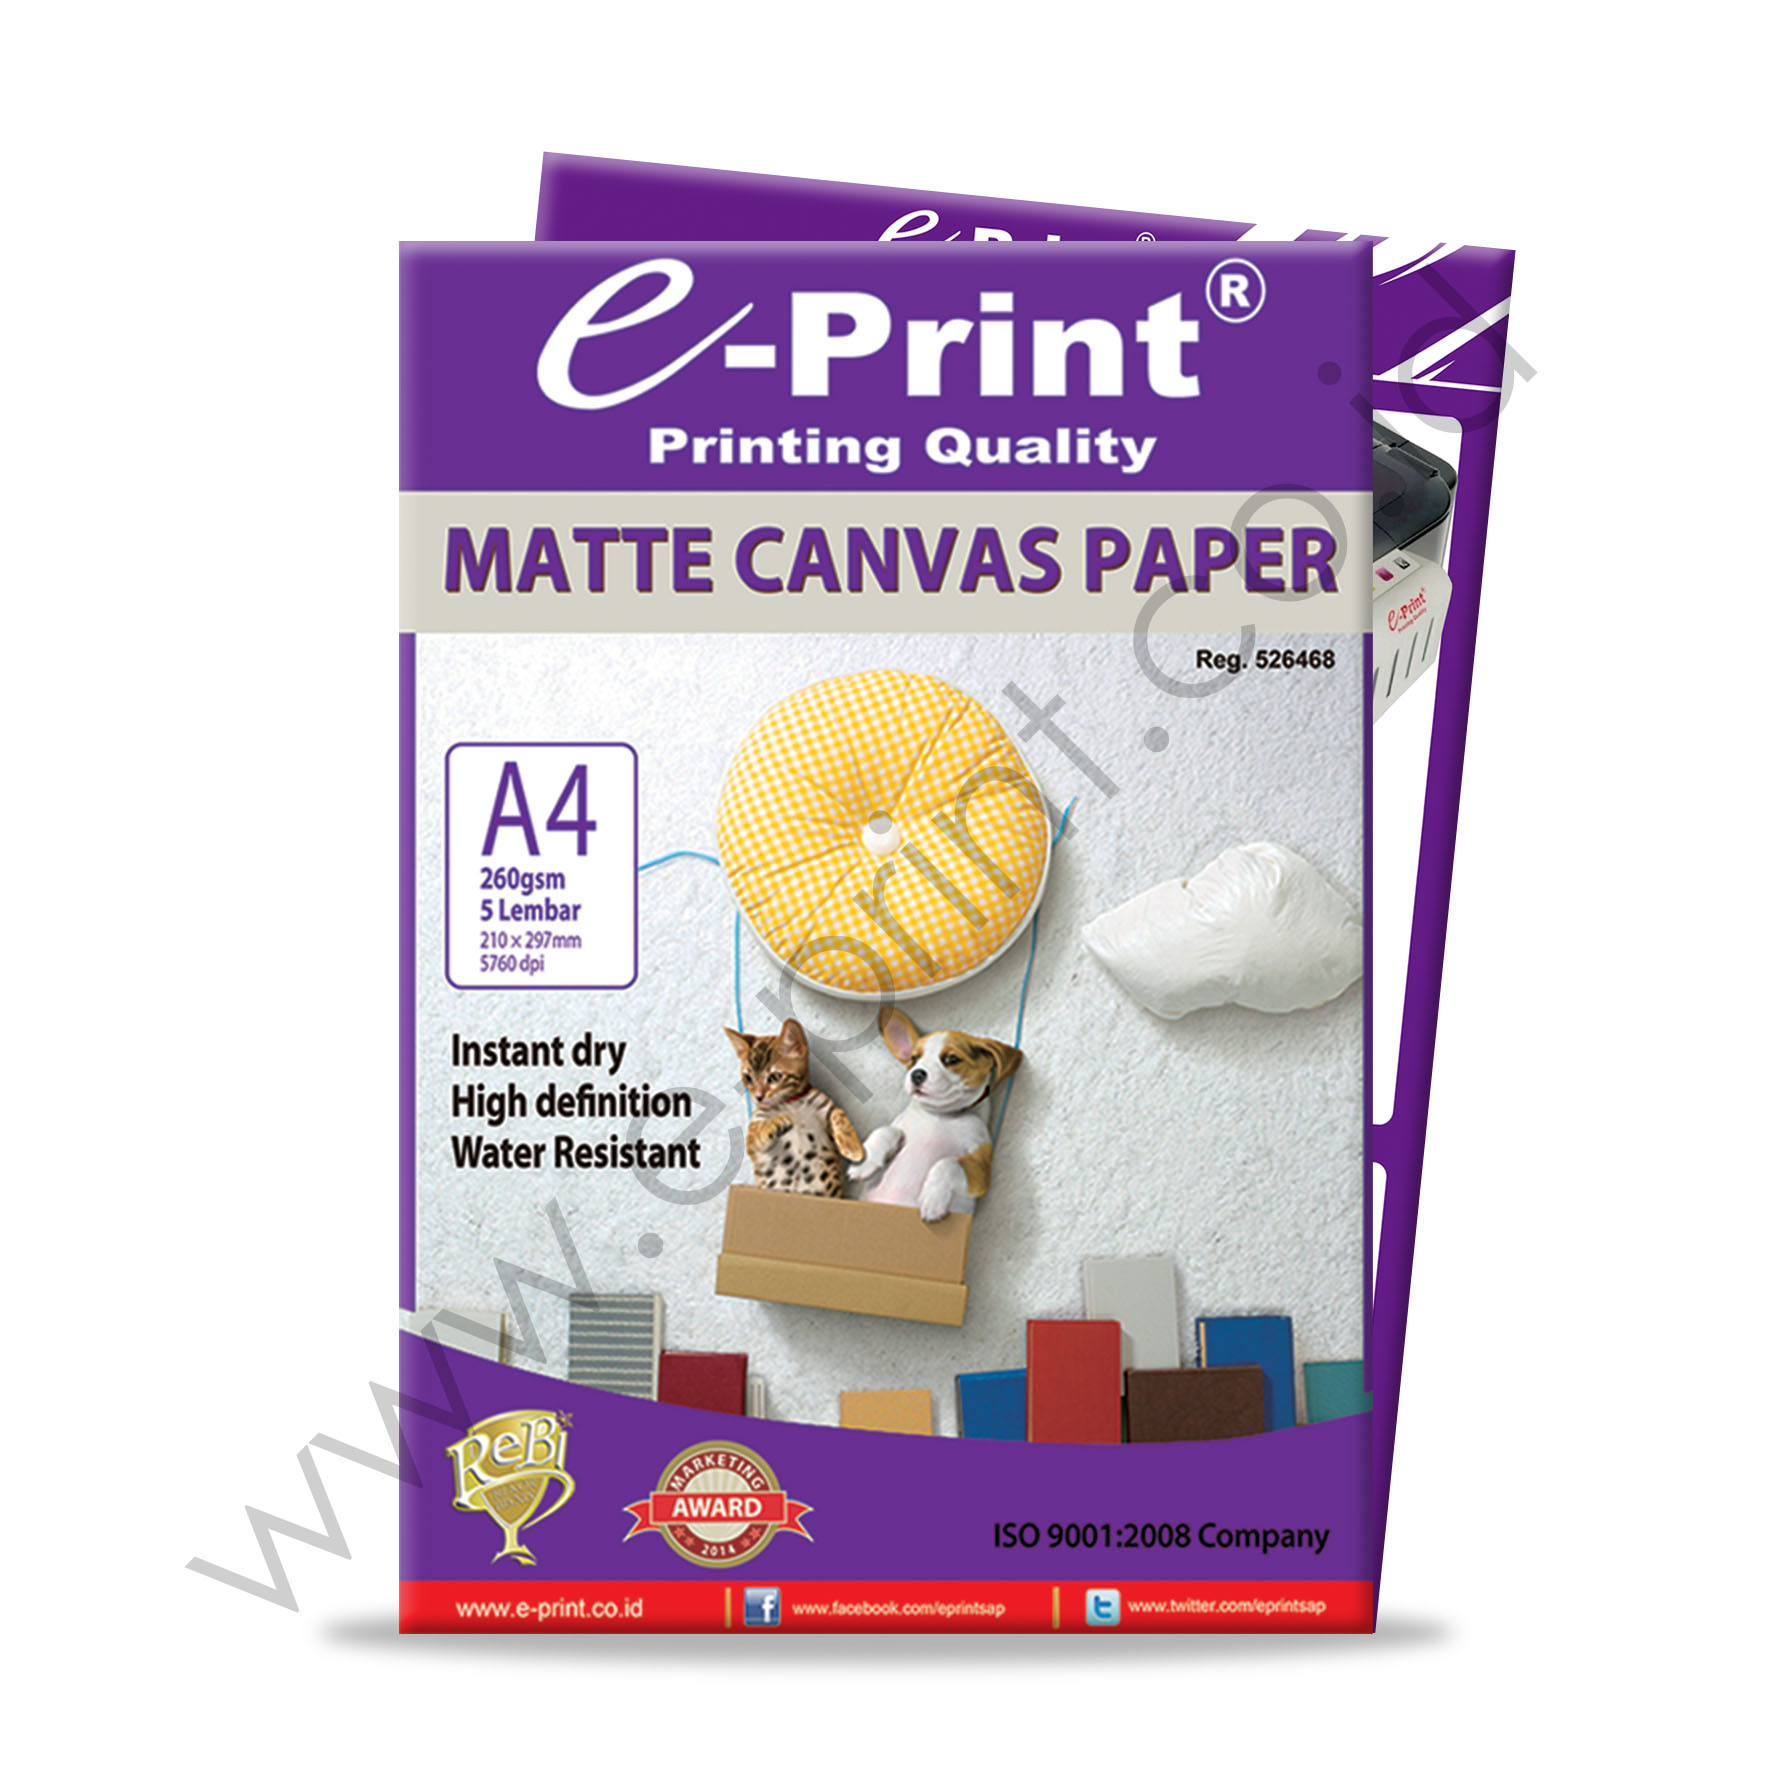 photo regarding Printable Canvas Paper called Matte Canvas Photograph Paper A4 260gsm